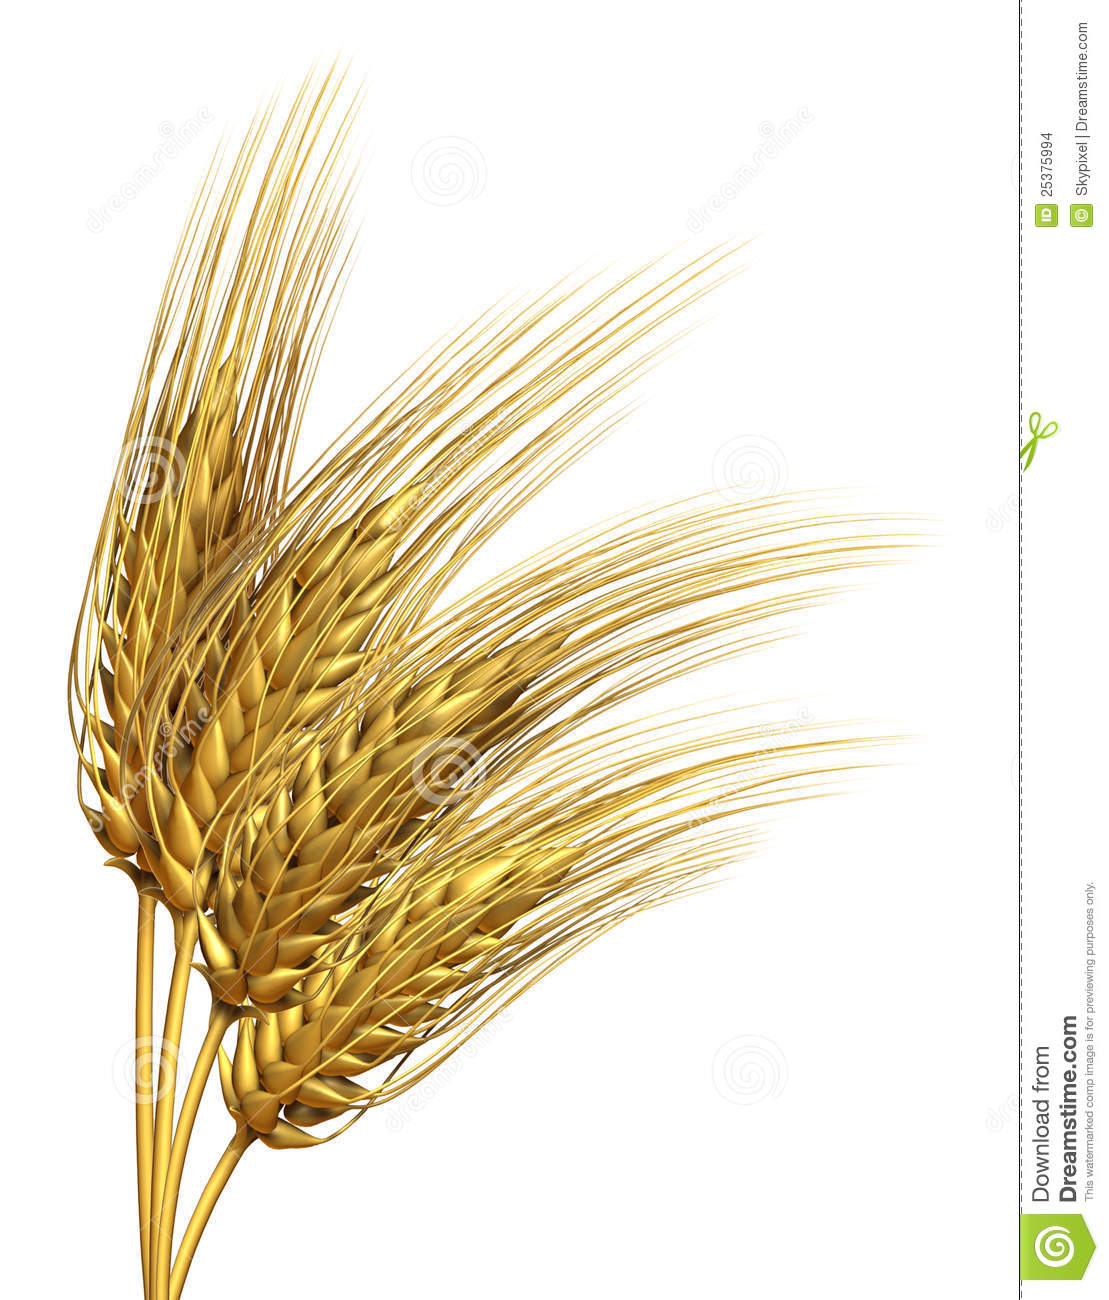 Wheat or barley Element